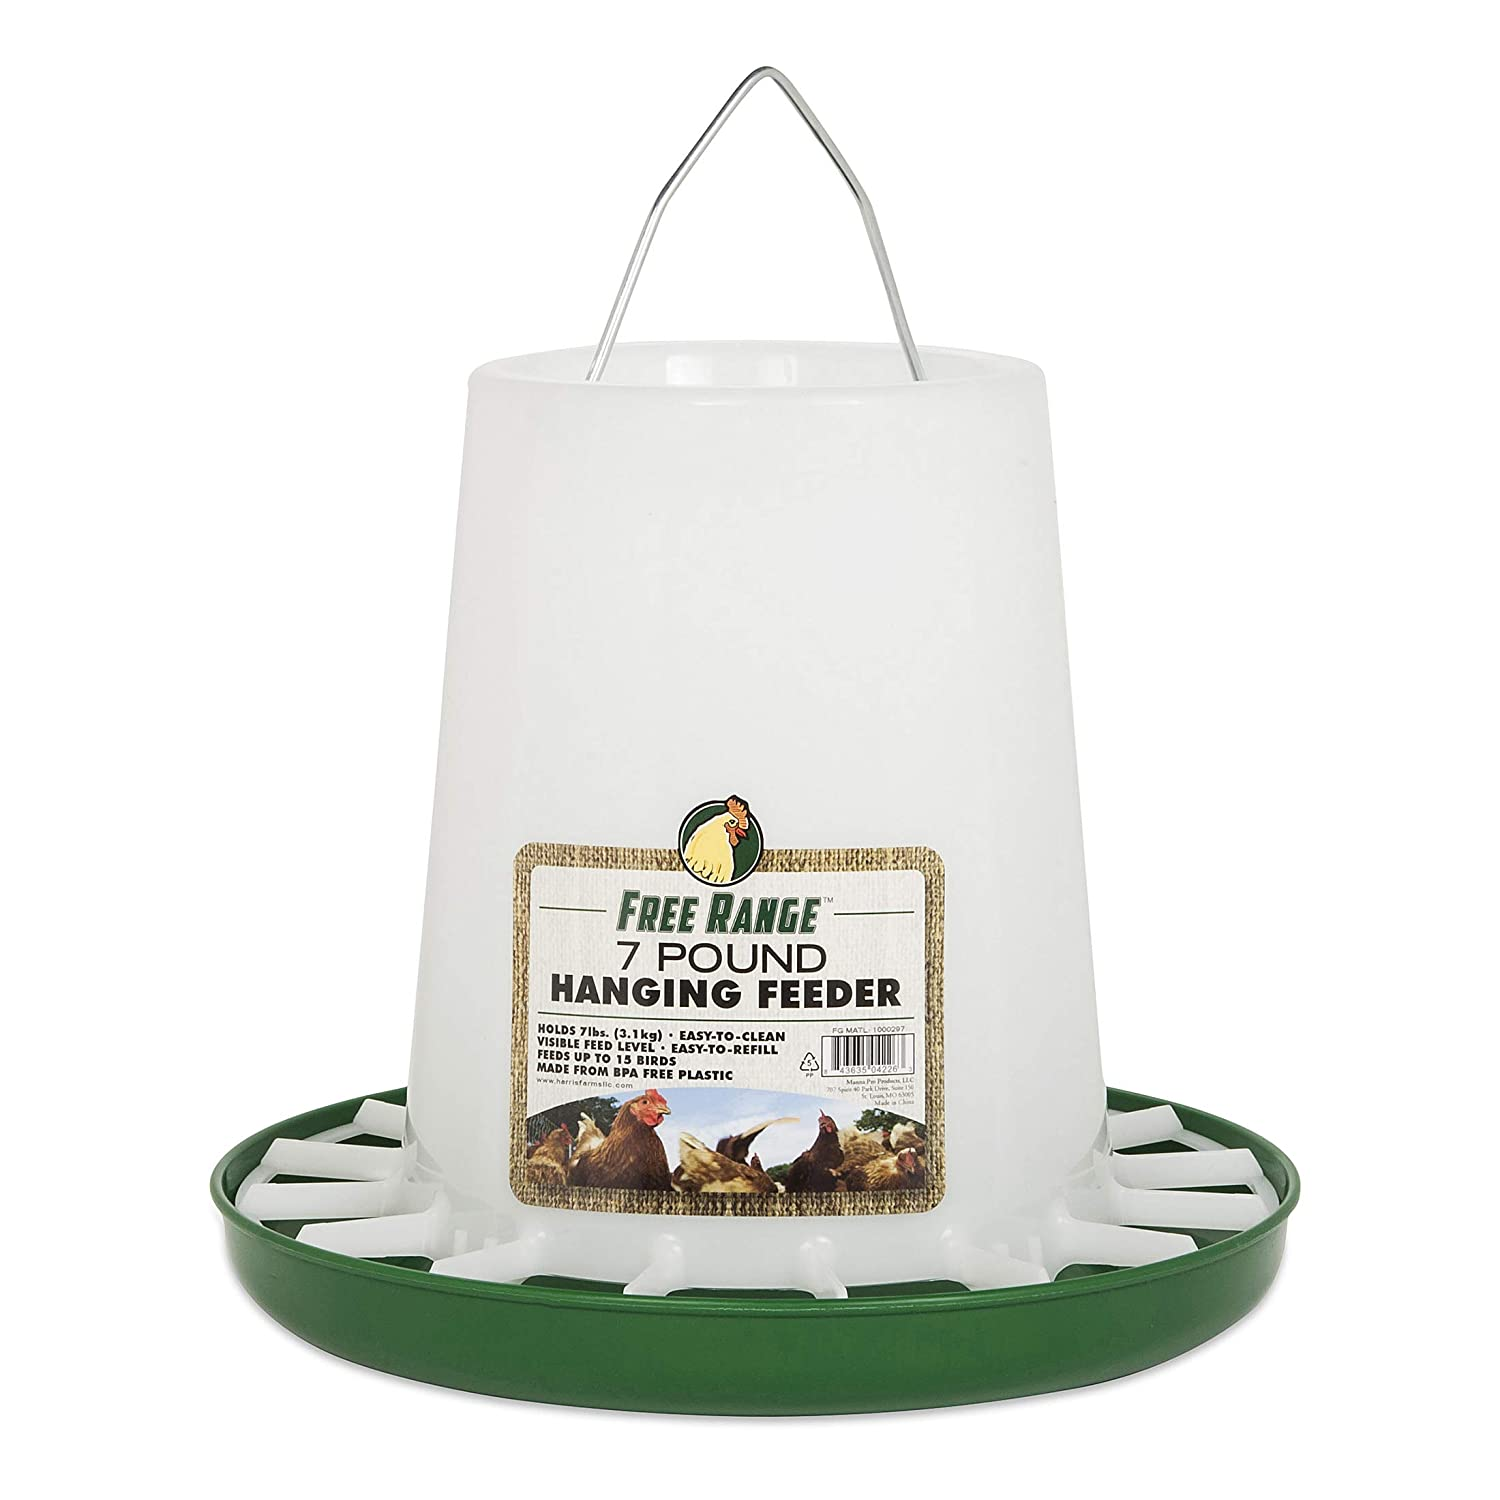 (1, new) Harris Farms 4226 3.2kg Plastic Hanging Poultry Feeder